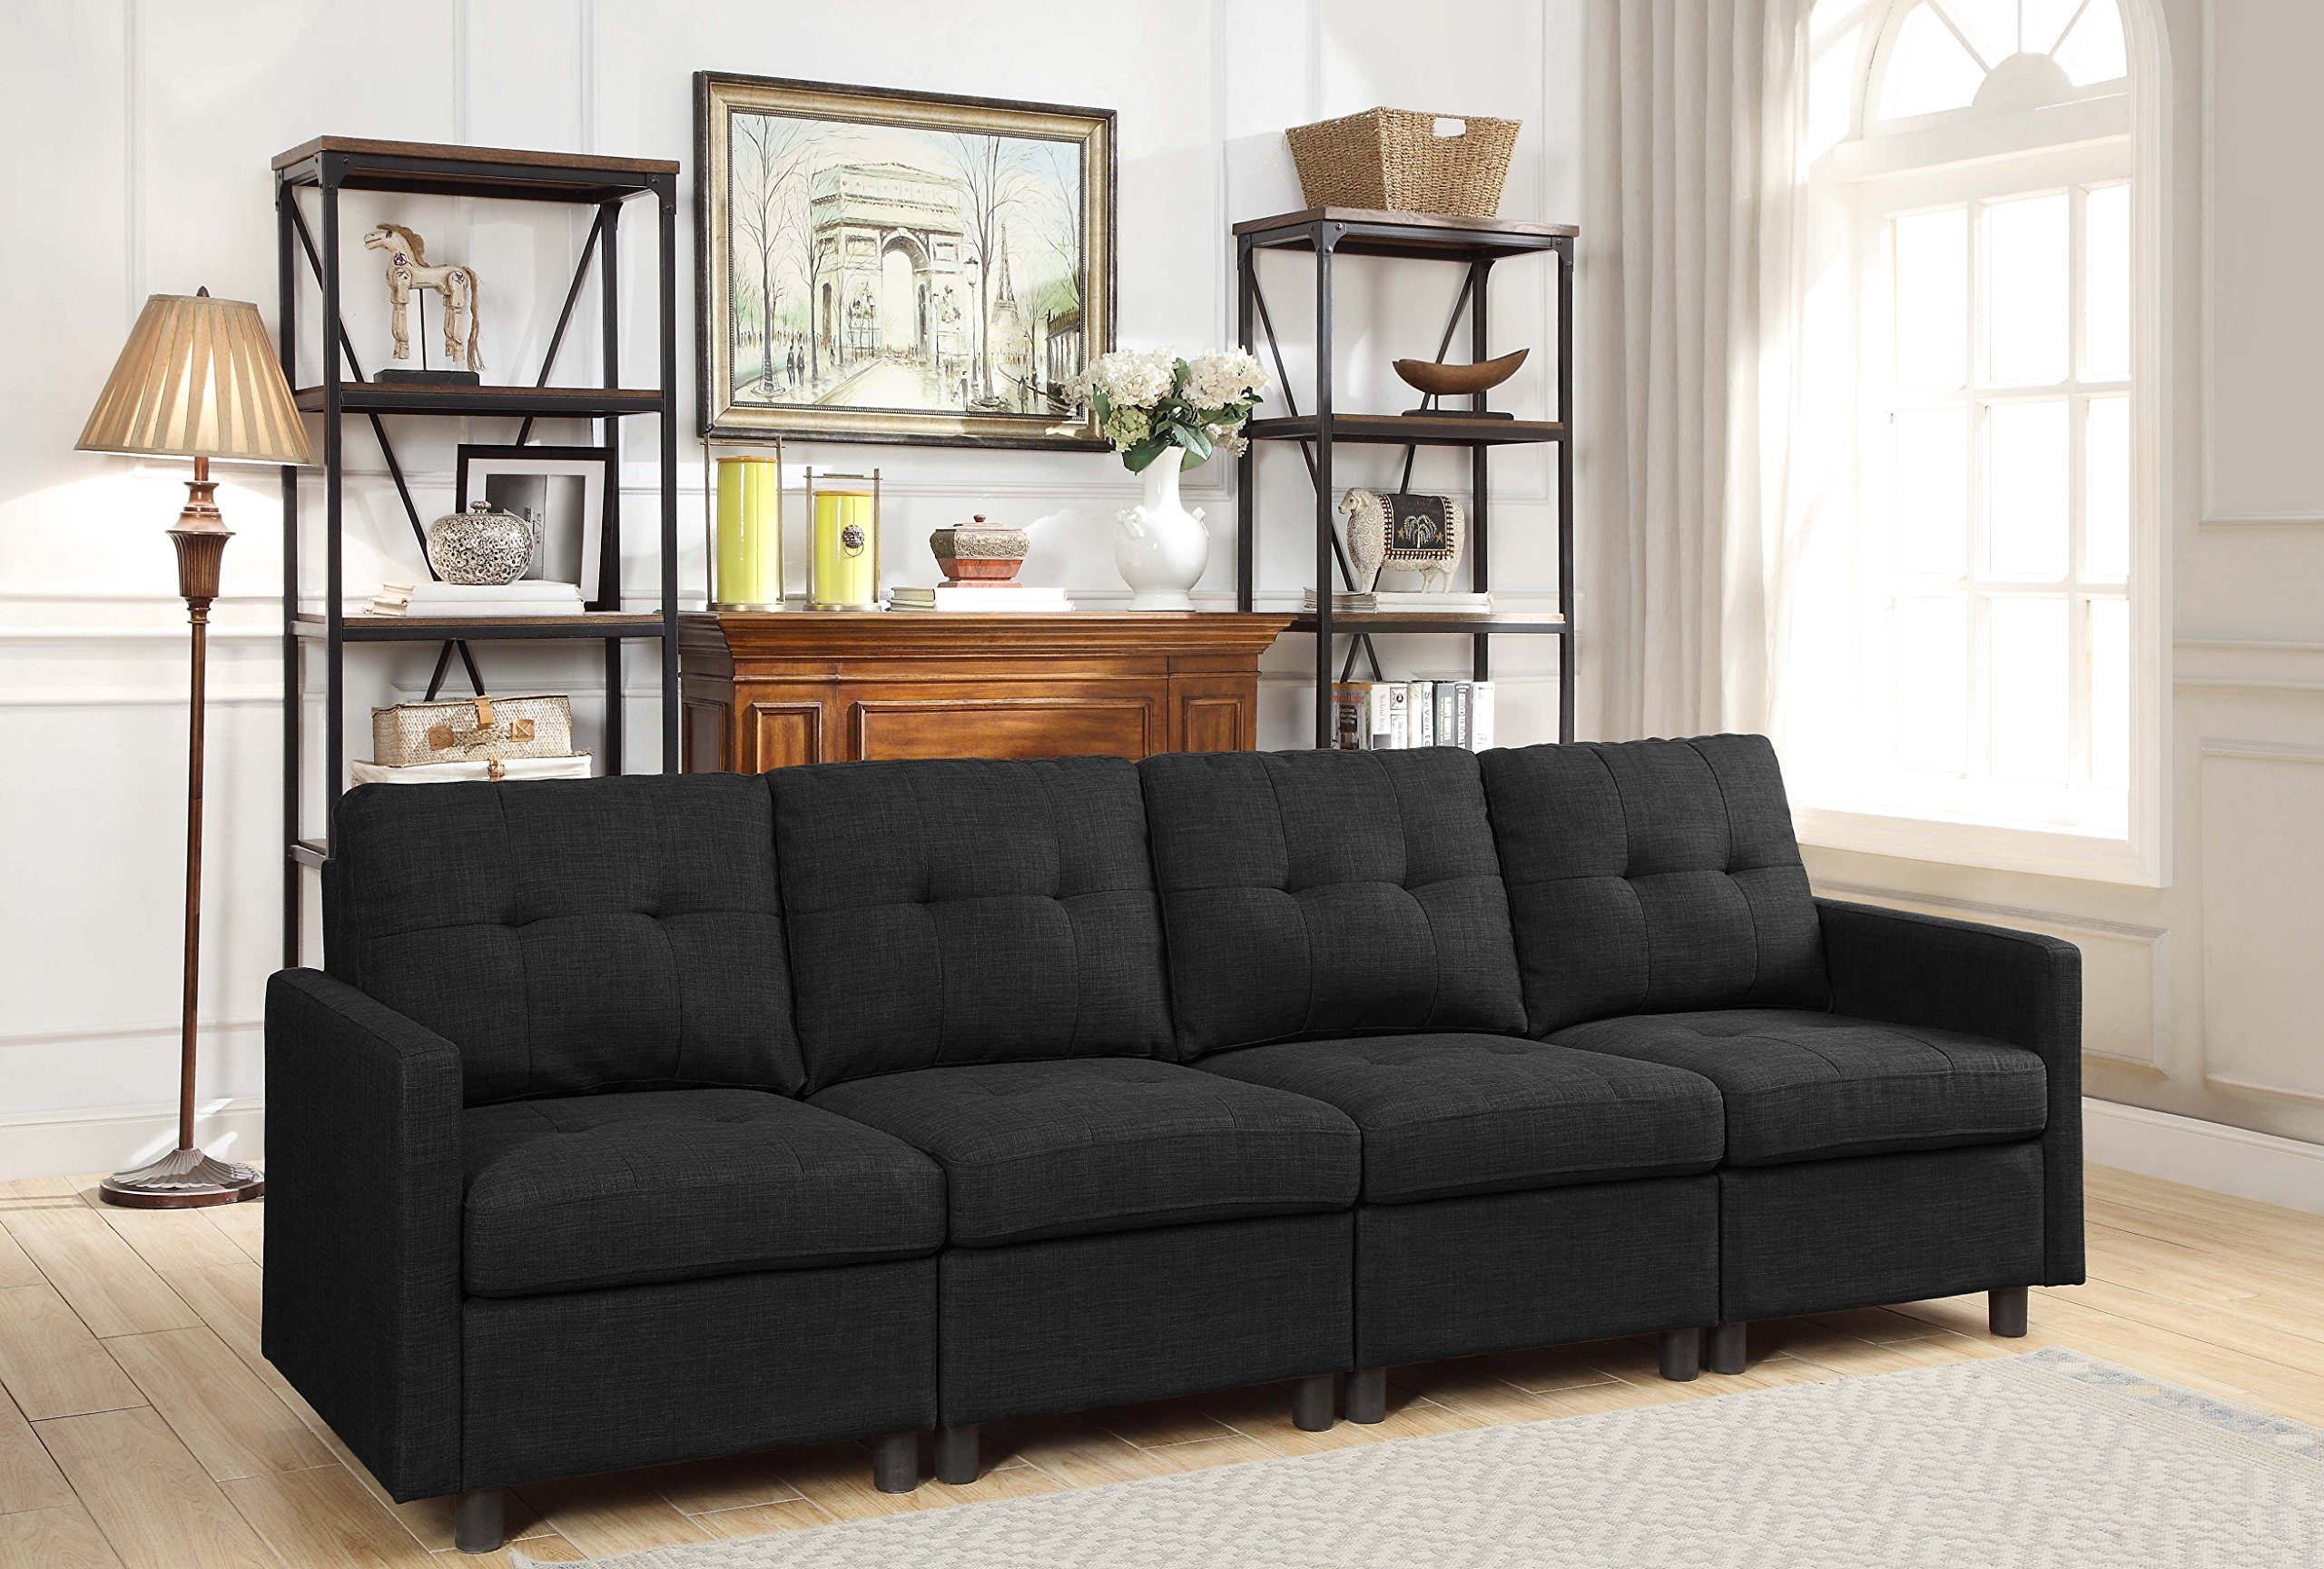 DAZONE Modular Sectional Sofa Assemble 4-Piece Modular Sectional Sofas Bundle Set Cushions, Easy to Assemble Left & Right Arm Chair, Armless Chair Living Room Set Sofas Charcoal Black by DAZONE